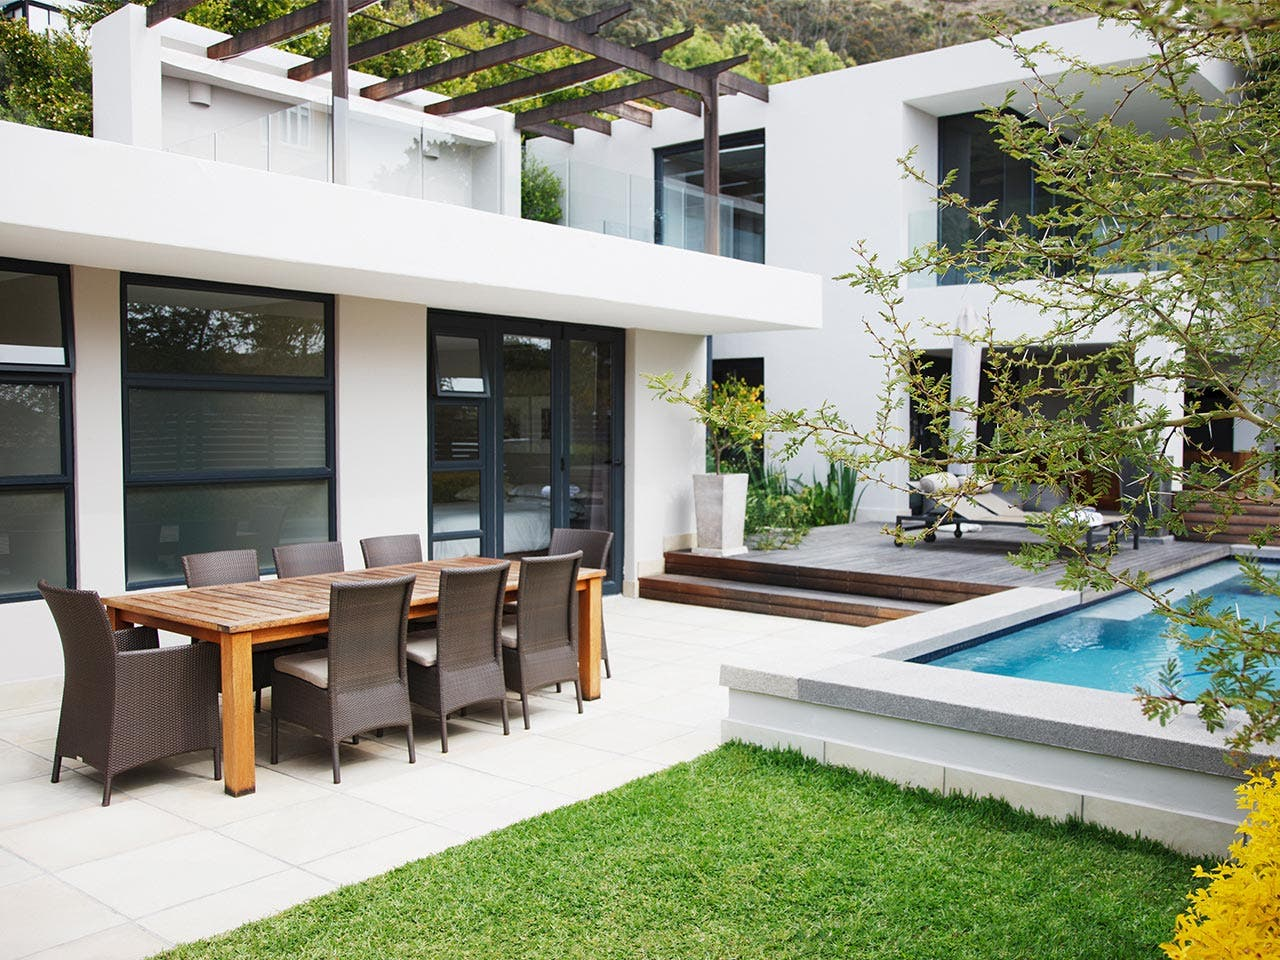 Backyard of house with nice pool and patio table